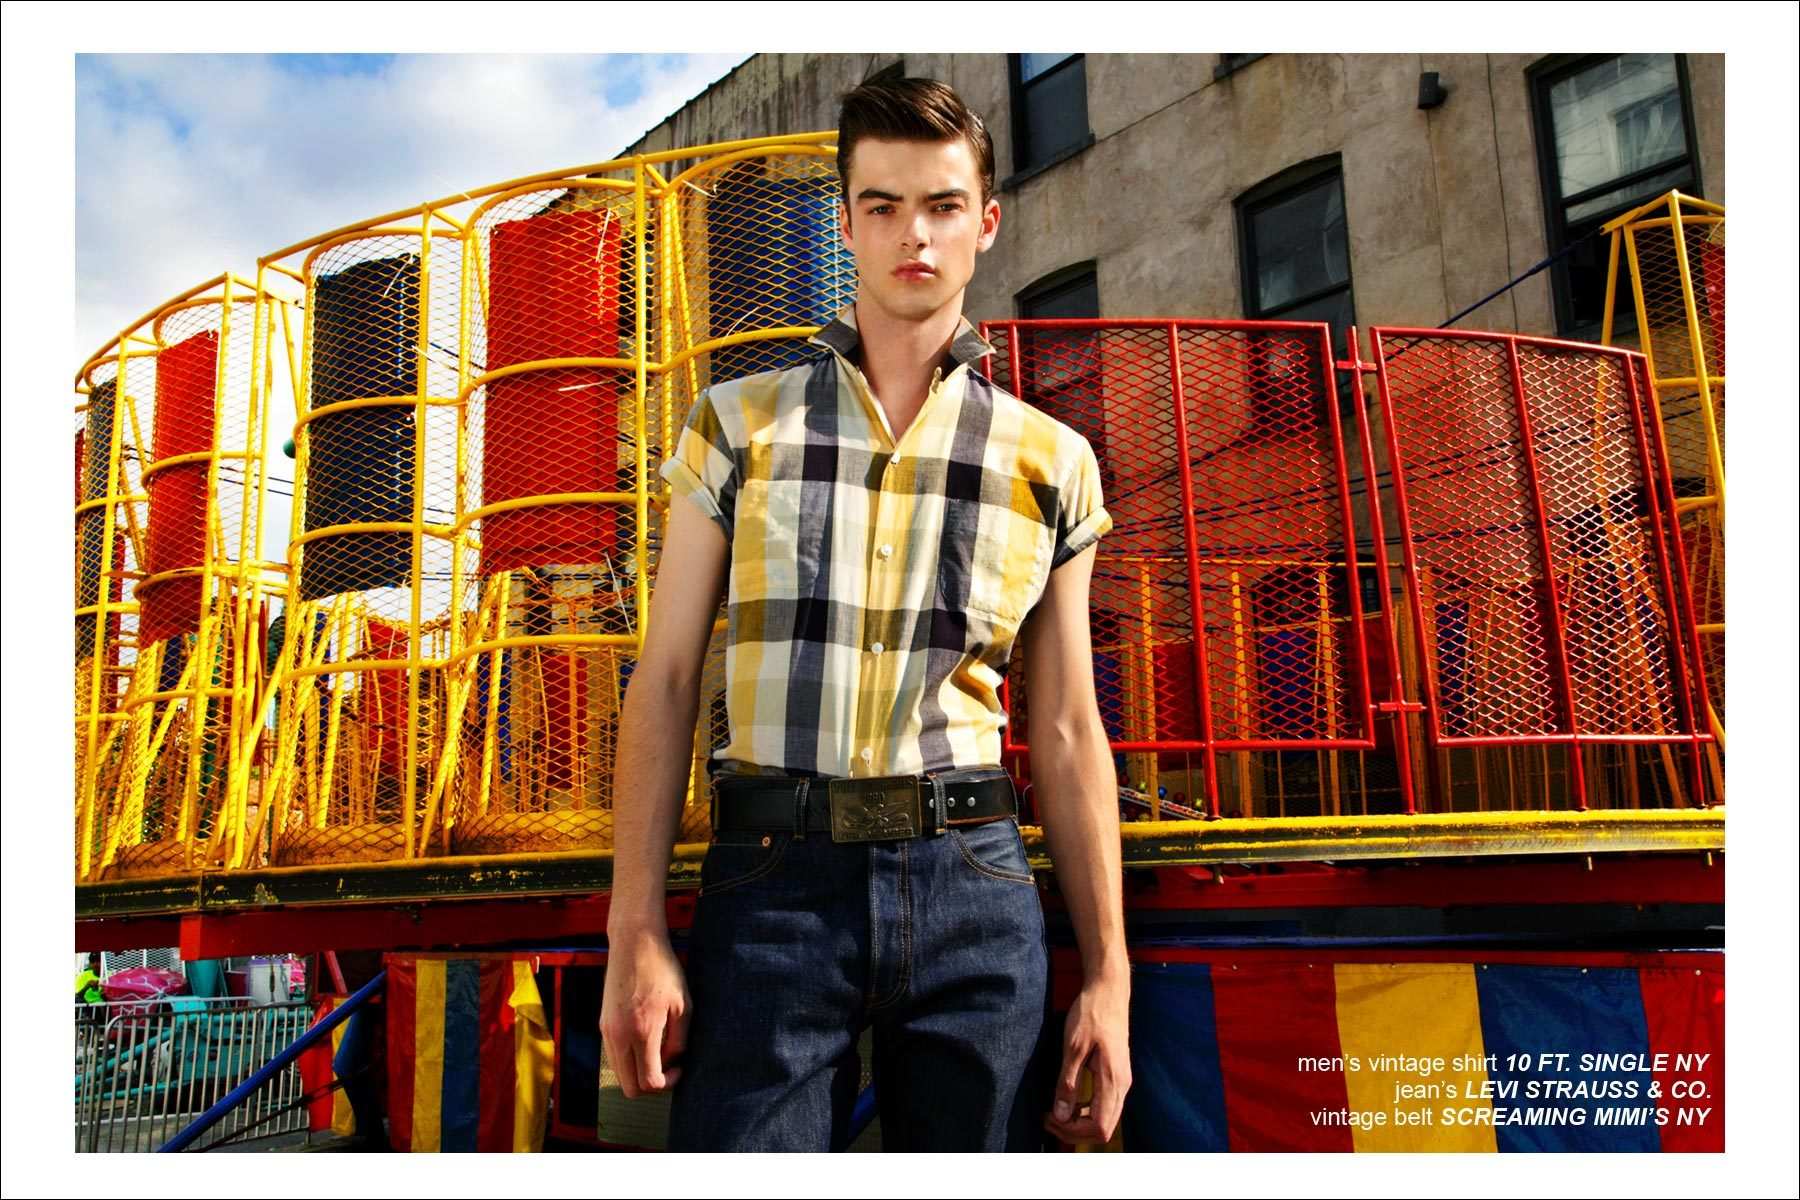 Fusion male model Mike Winchester, photographed in Williamsburg, NY by Alexander Thompson for Ponyboy Magazine men's rockabilly editorial.